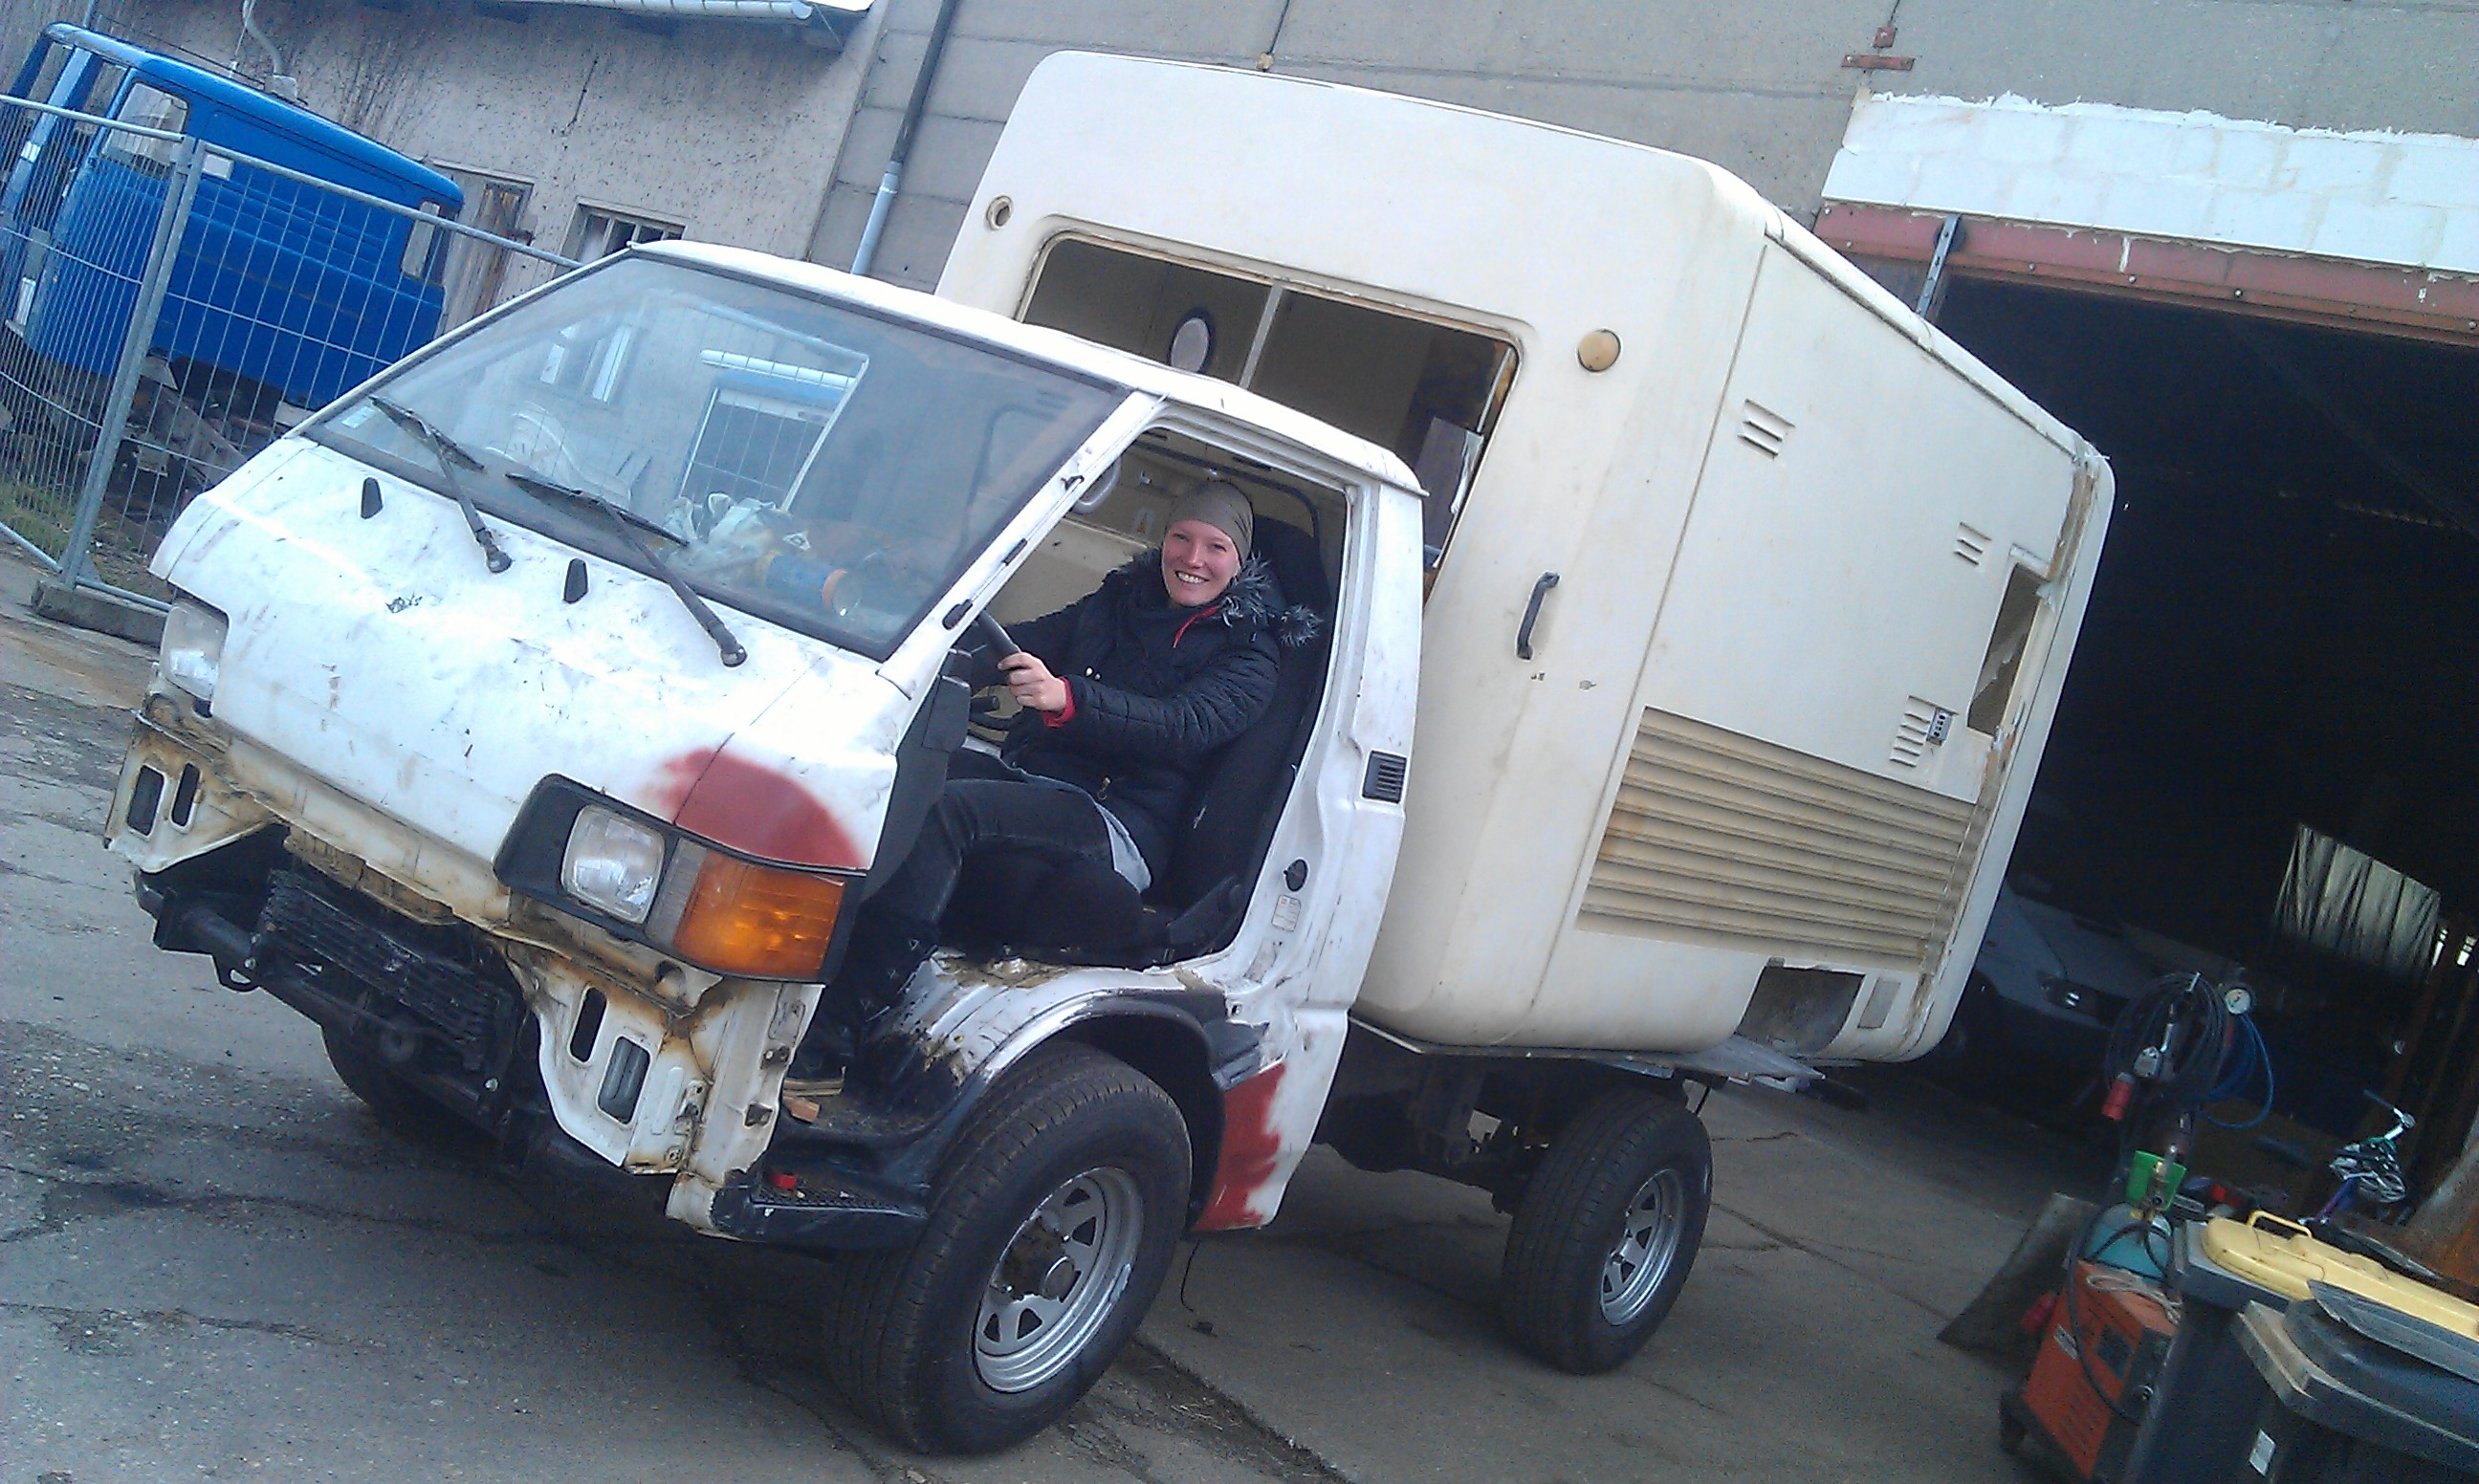 Neues Reisemobil in Arbeit – L300 4×4 Intercamp